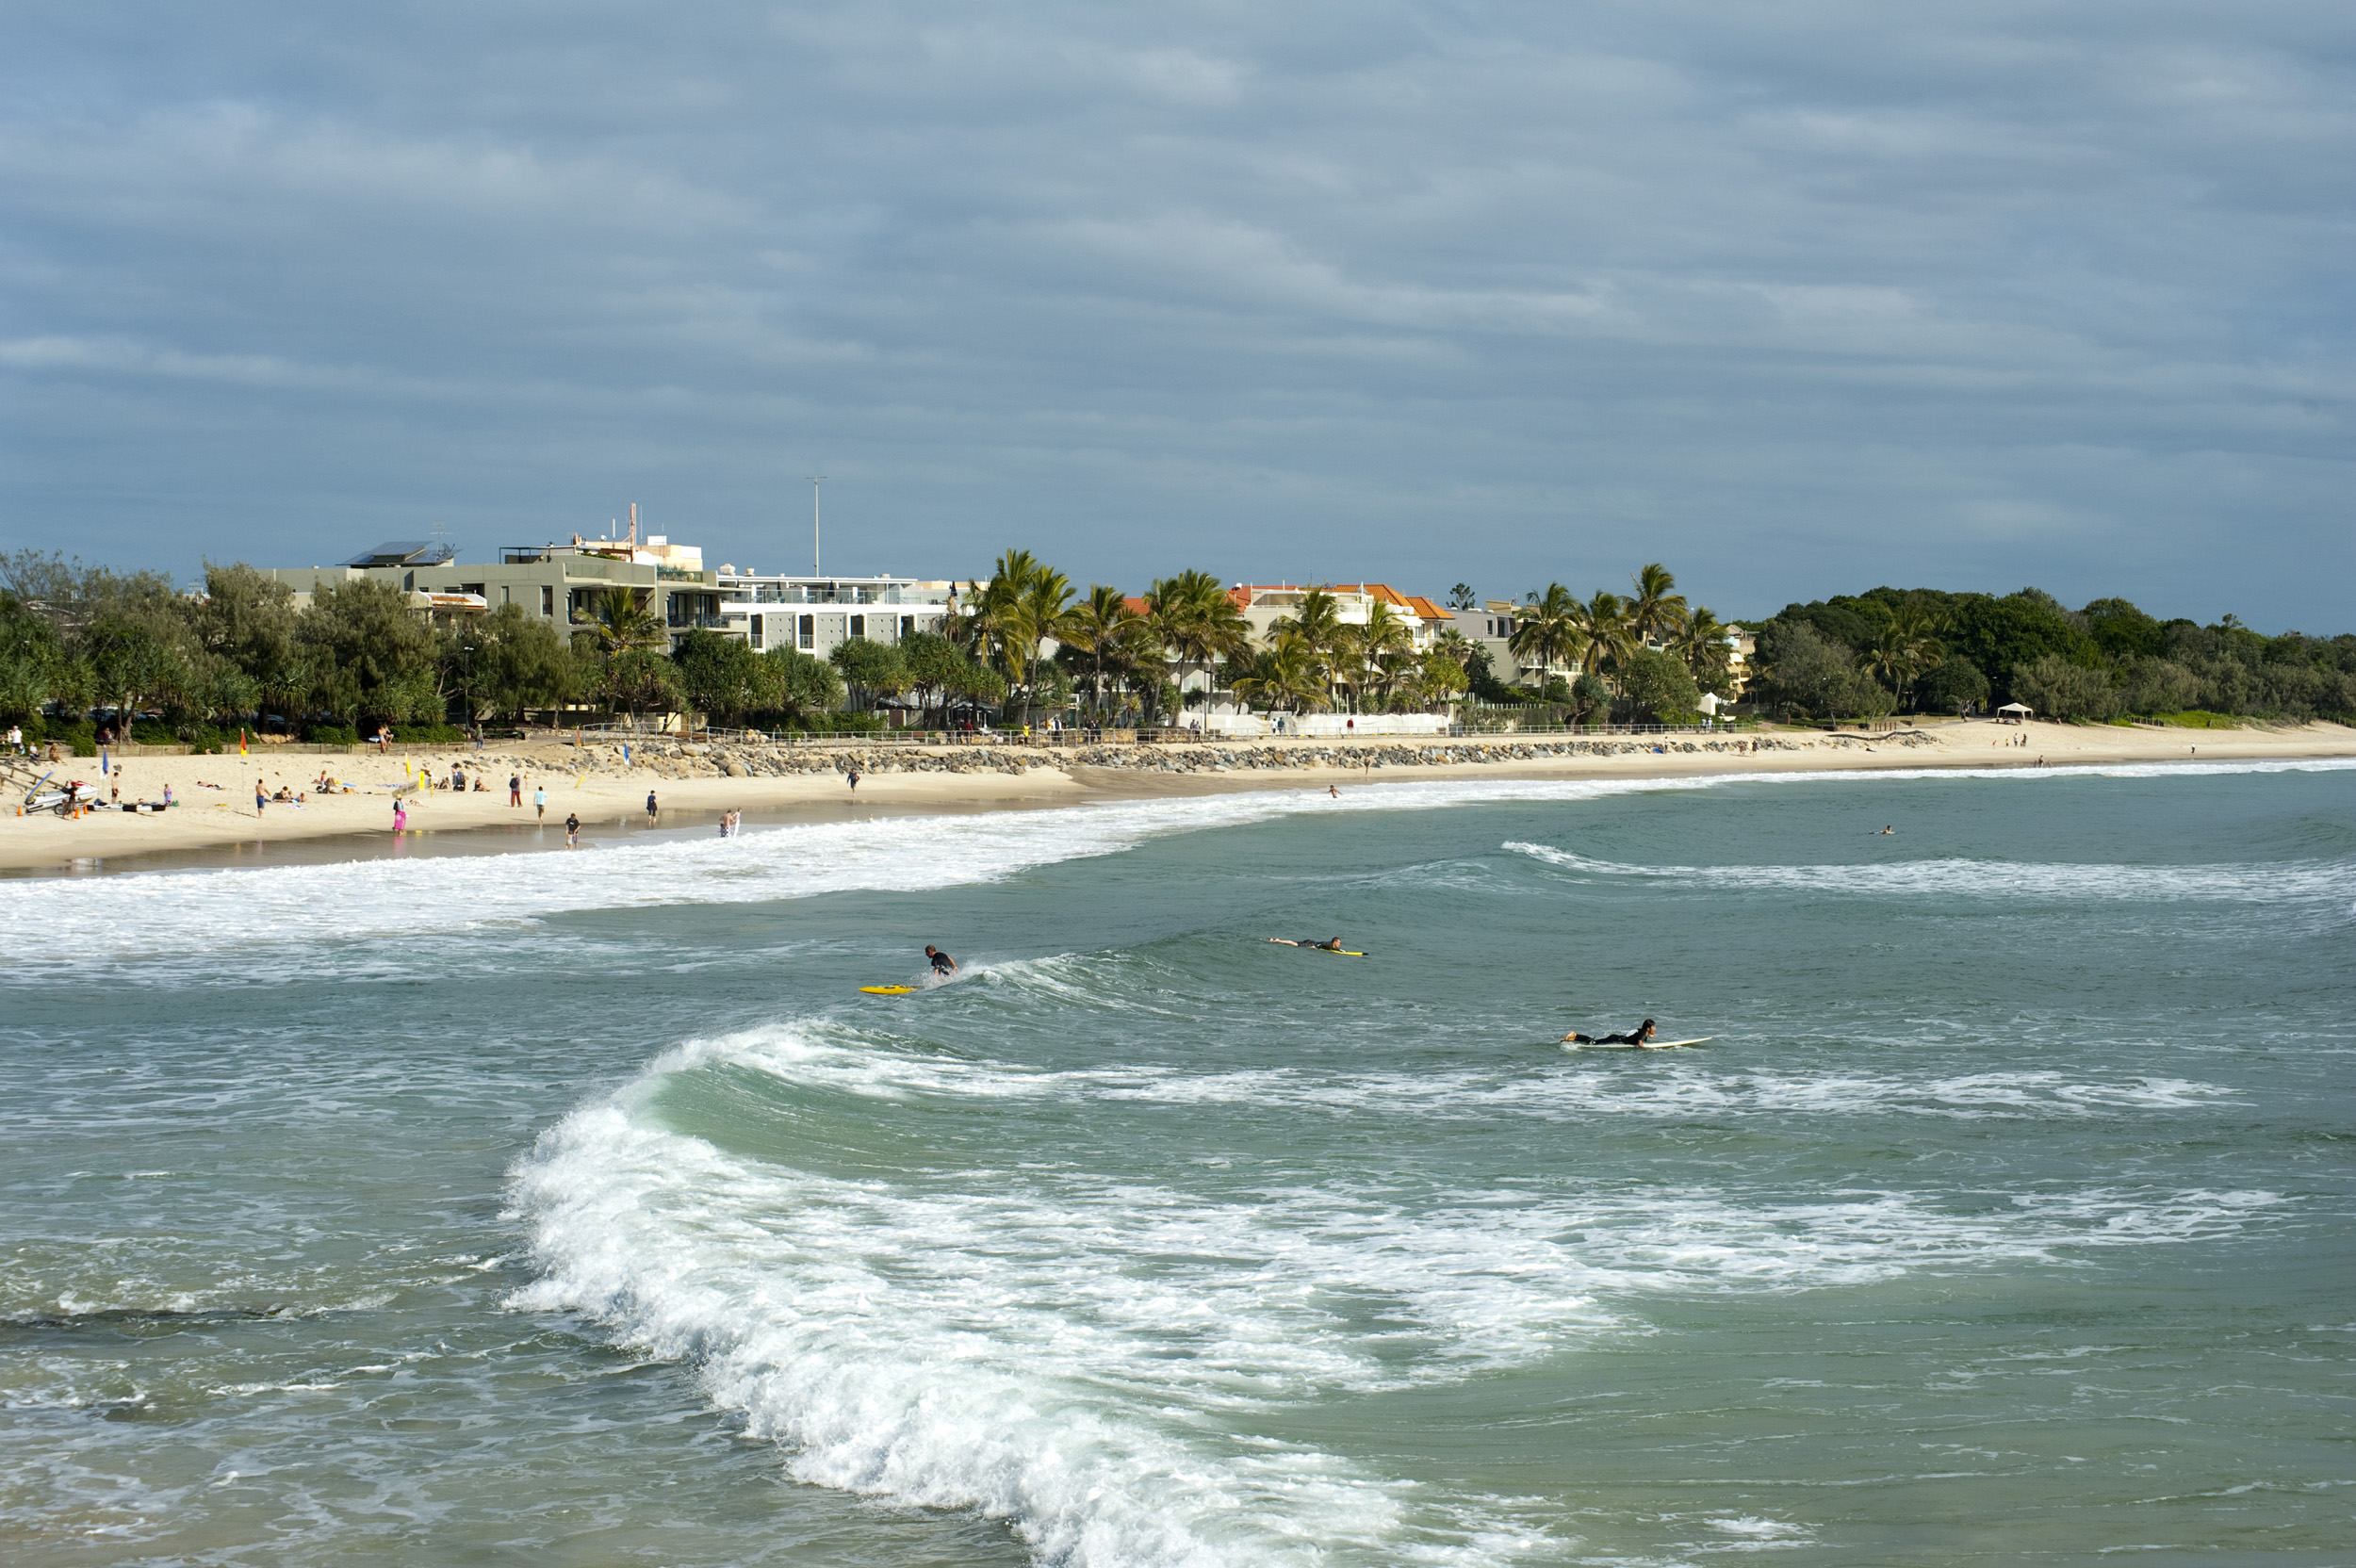 Surfers and holidaymakers enjoying the surf on Noosa Beach in Queensland, Australia